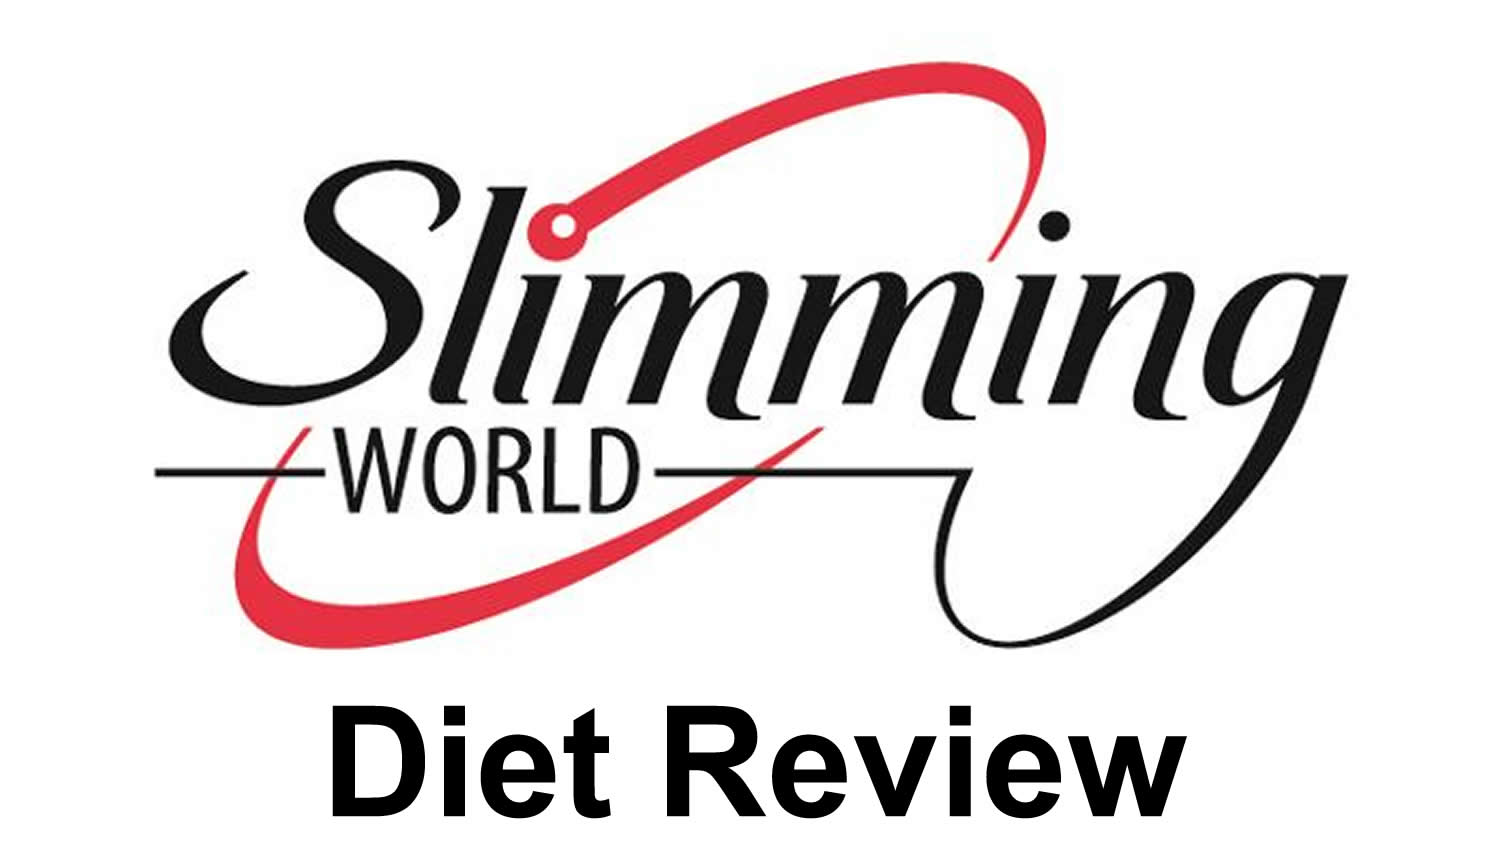 Slimming world diet slimming world diet review Foods to eat on slimming world